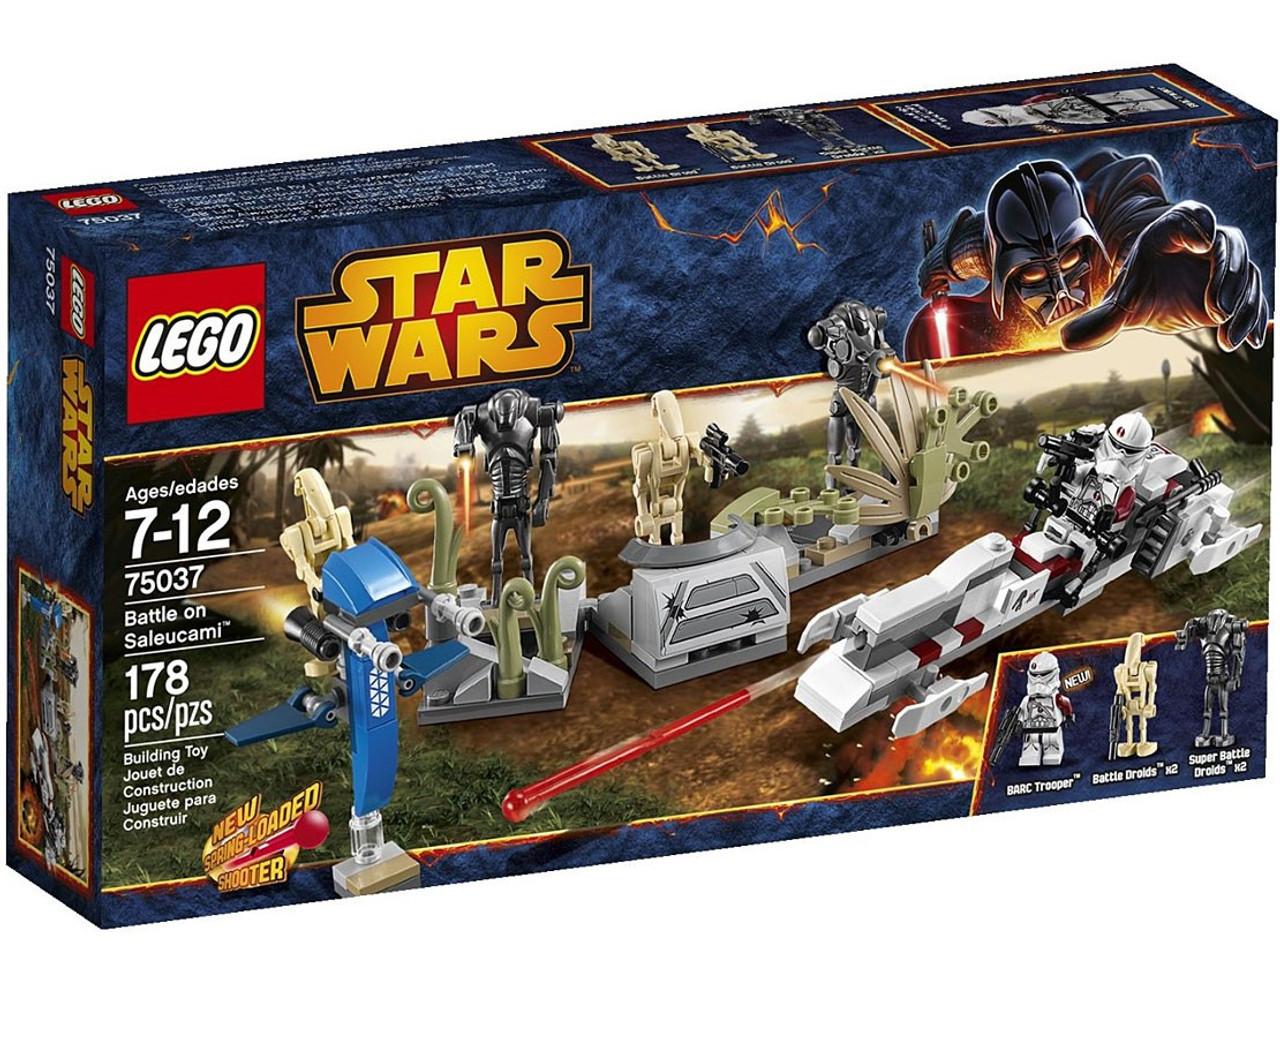 LEGO Star Wars Revenge of the Sith Battle on Saleucami Set #75037